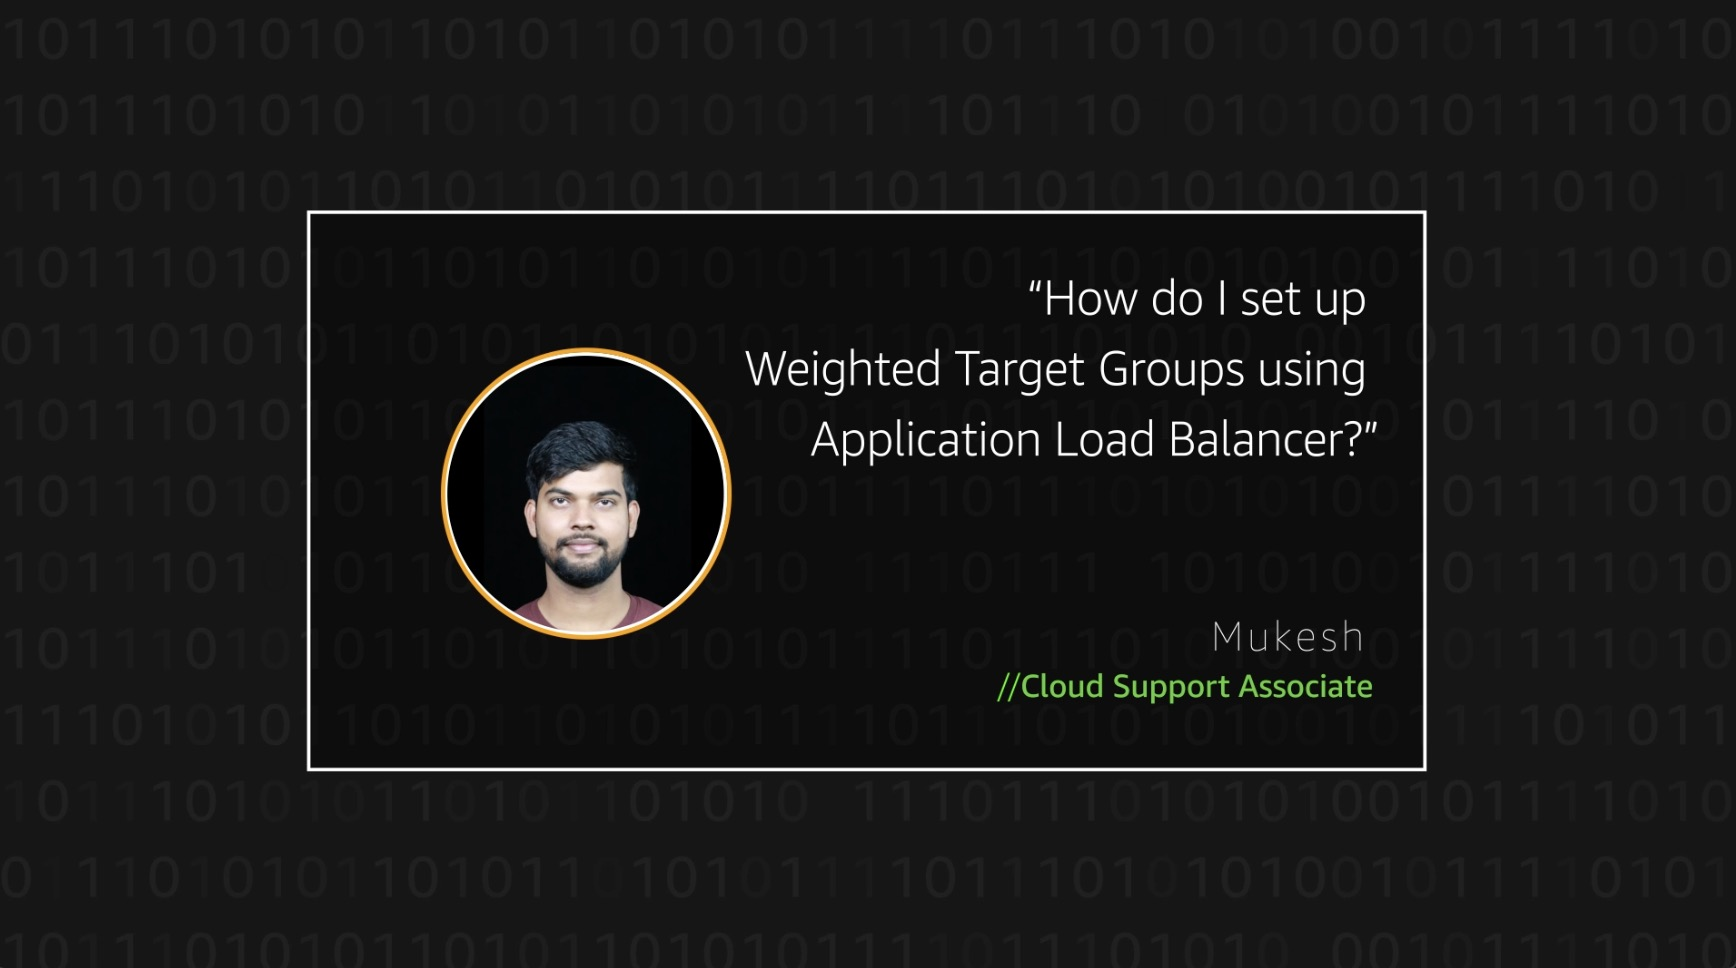 Watch Mukesh's video to learn more